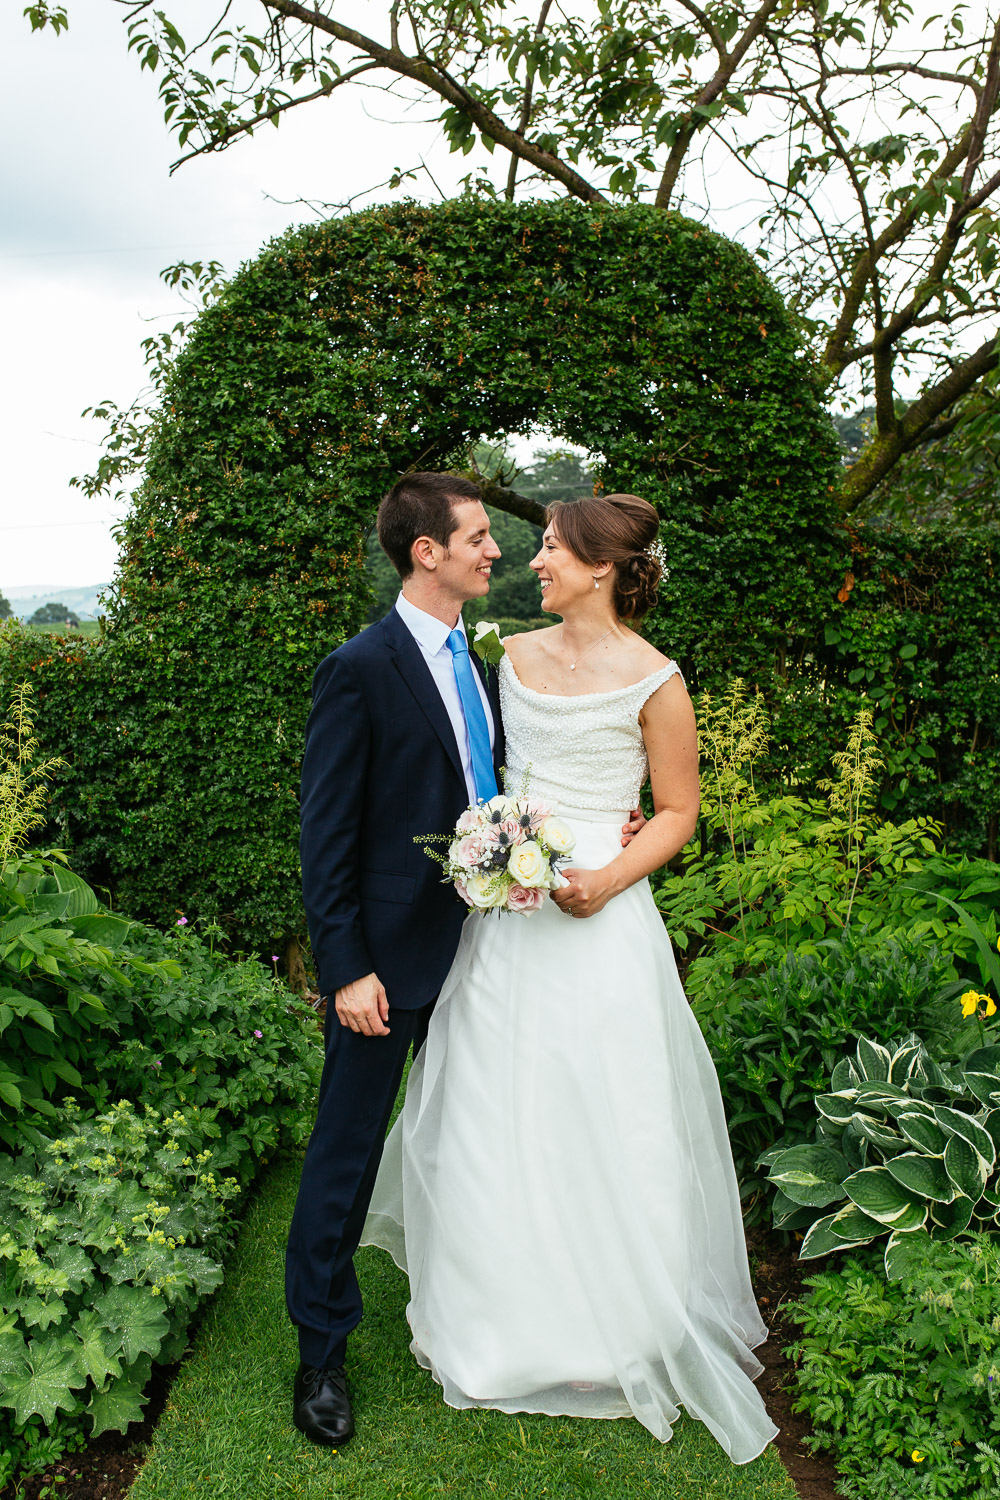 Lorna-and-Andrew-Highlights-Low-Res-48.jpg